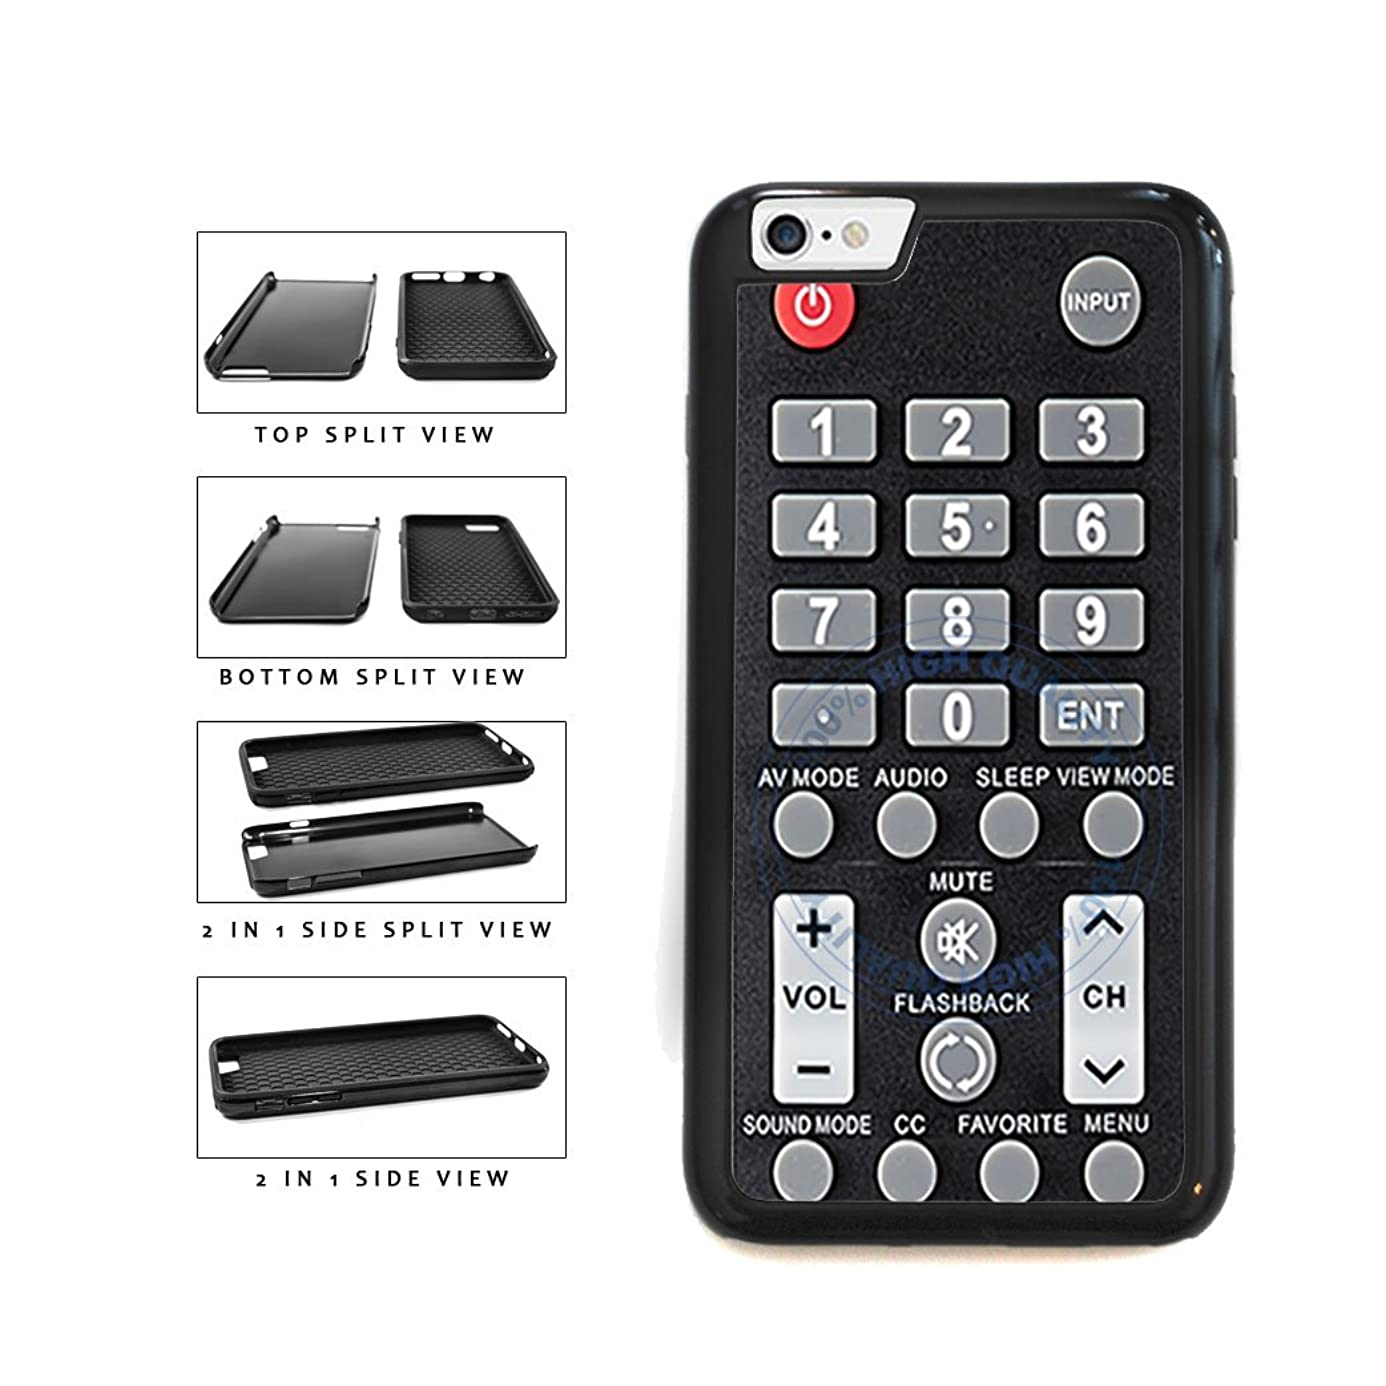 BleuReign(TM) Funny TV Remote Control 2-Piece Dual Layer Phone Case Back Cover For Apple iPhone 6 6s (4.7 Inches Screen) osa3913968